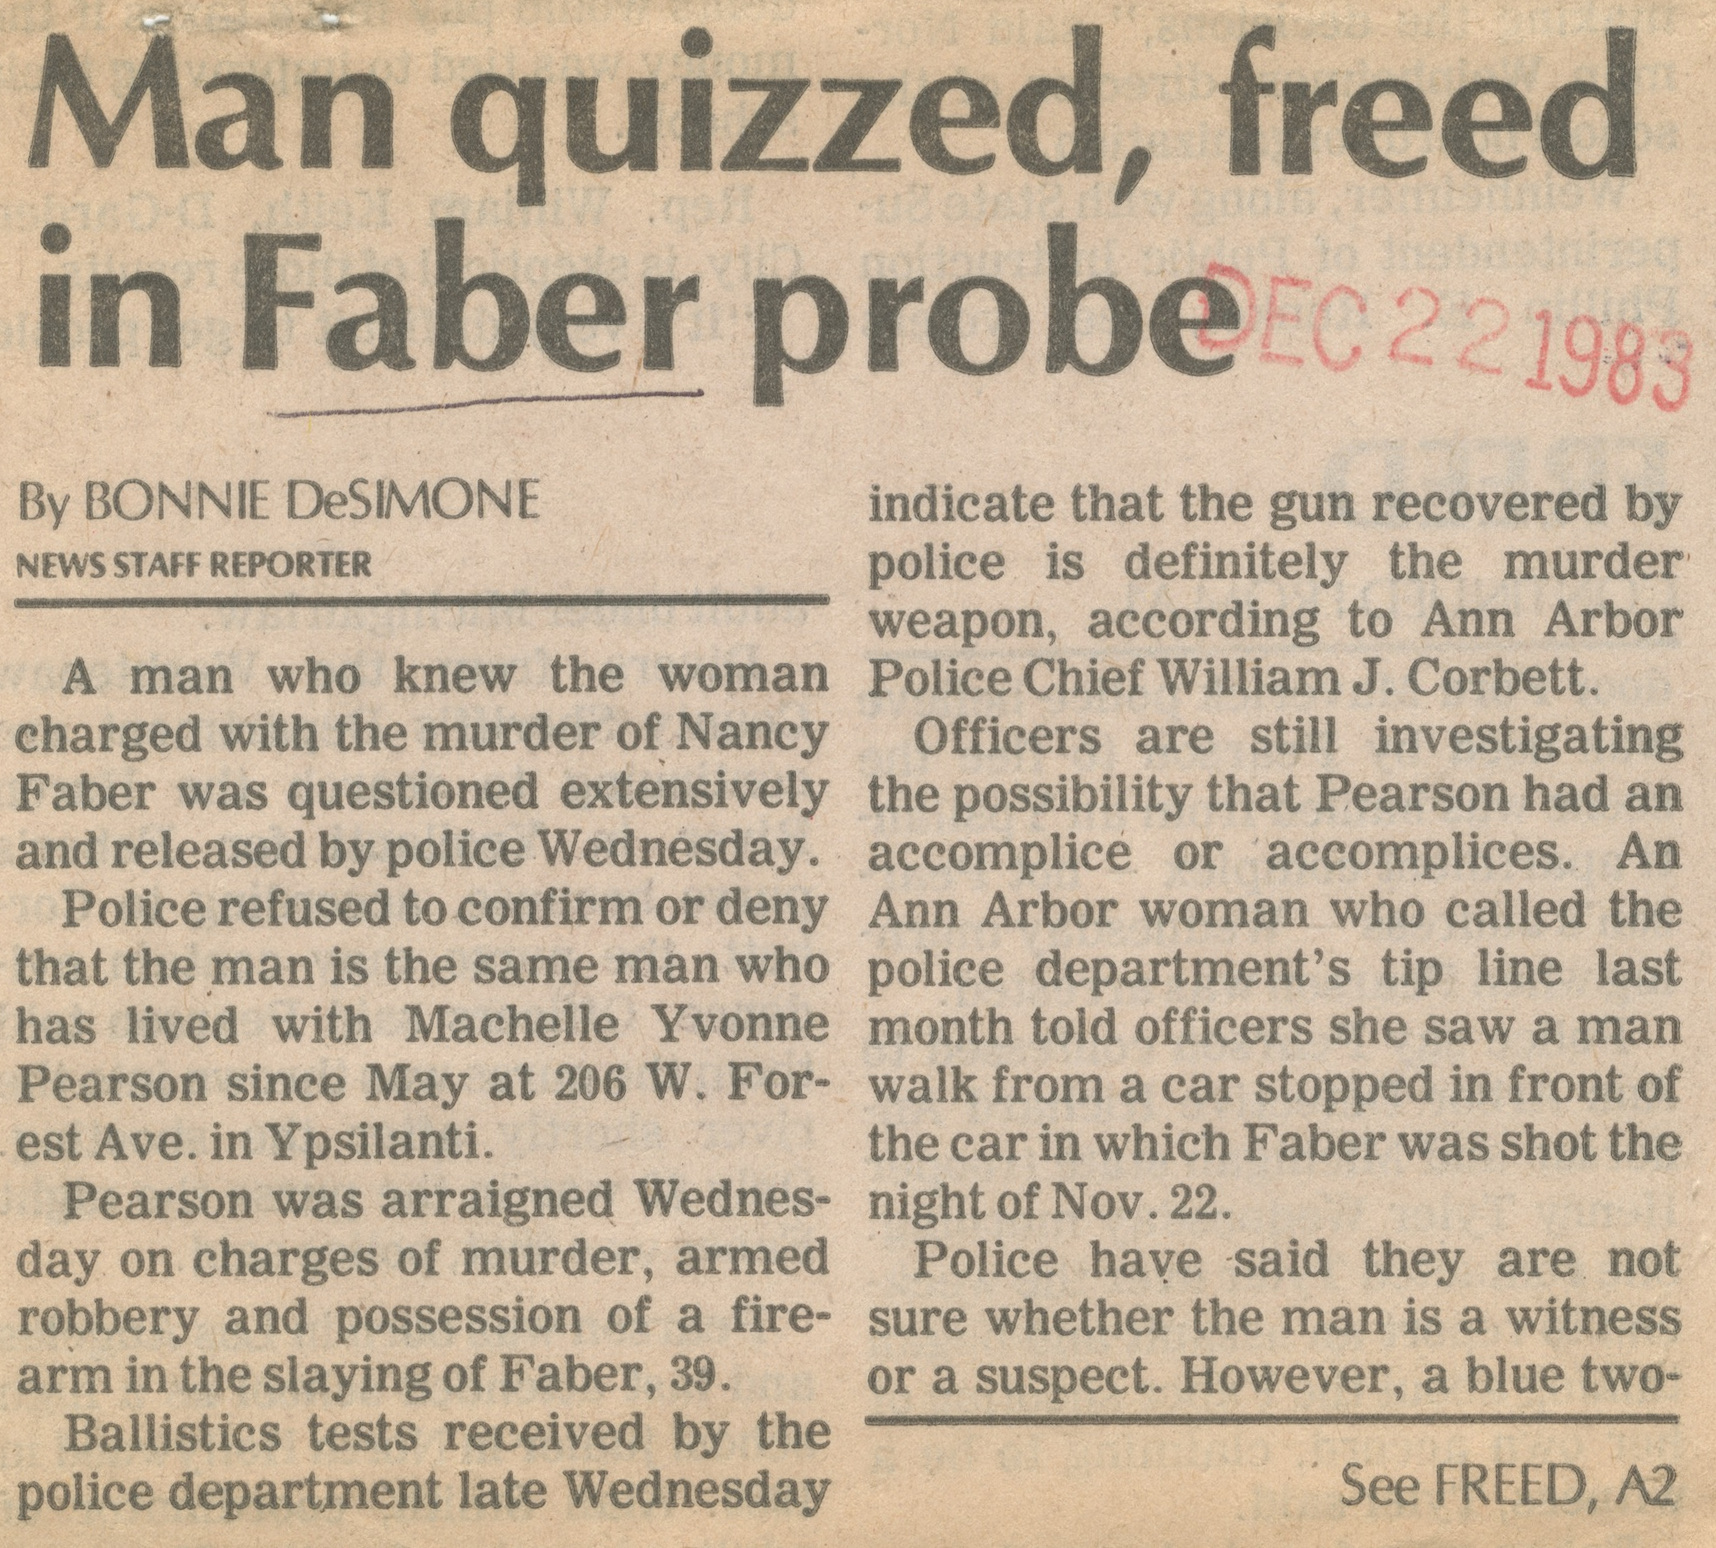 Man Quizzed, Freed In Faber Probe image